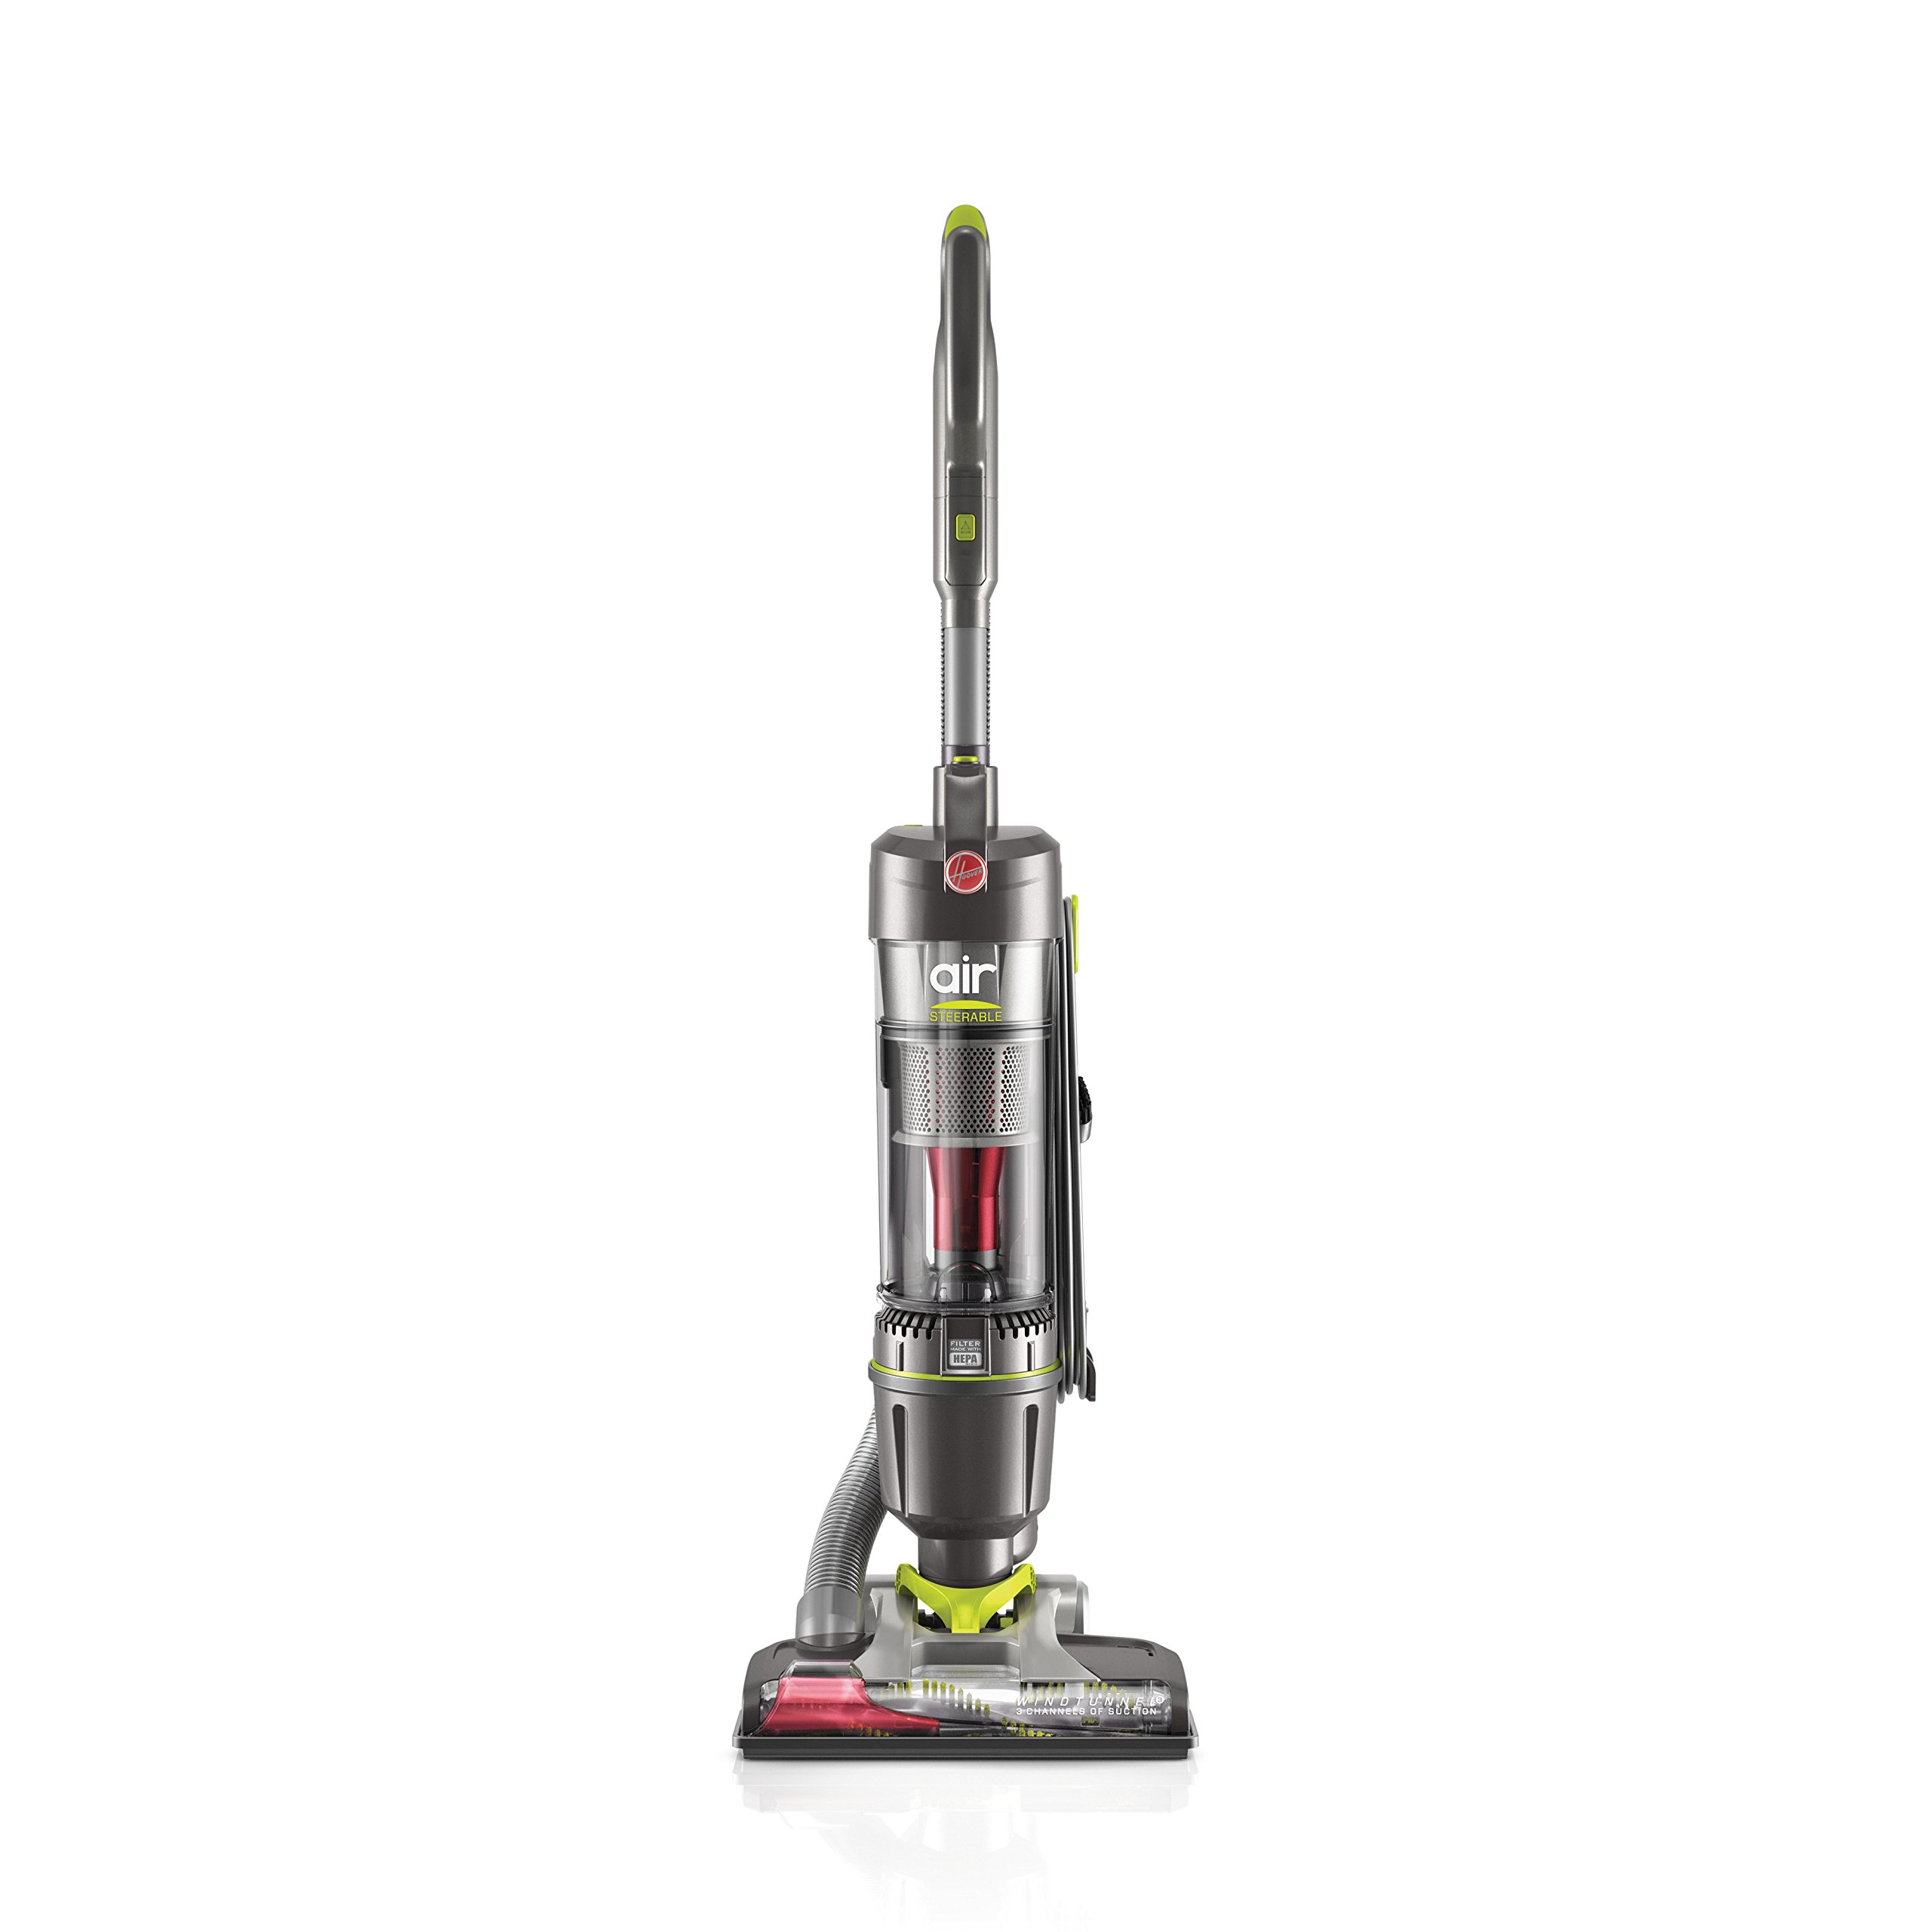 Hoover Vacuum Cleaner Air Steerable WindTunnel Bagless Lightweight Corded Upright UH72400 by Hoover